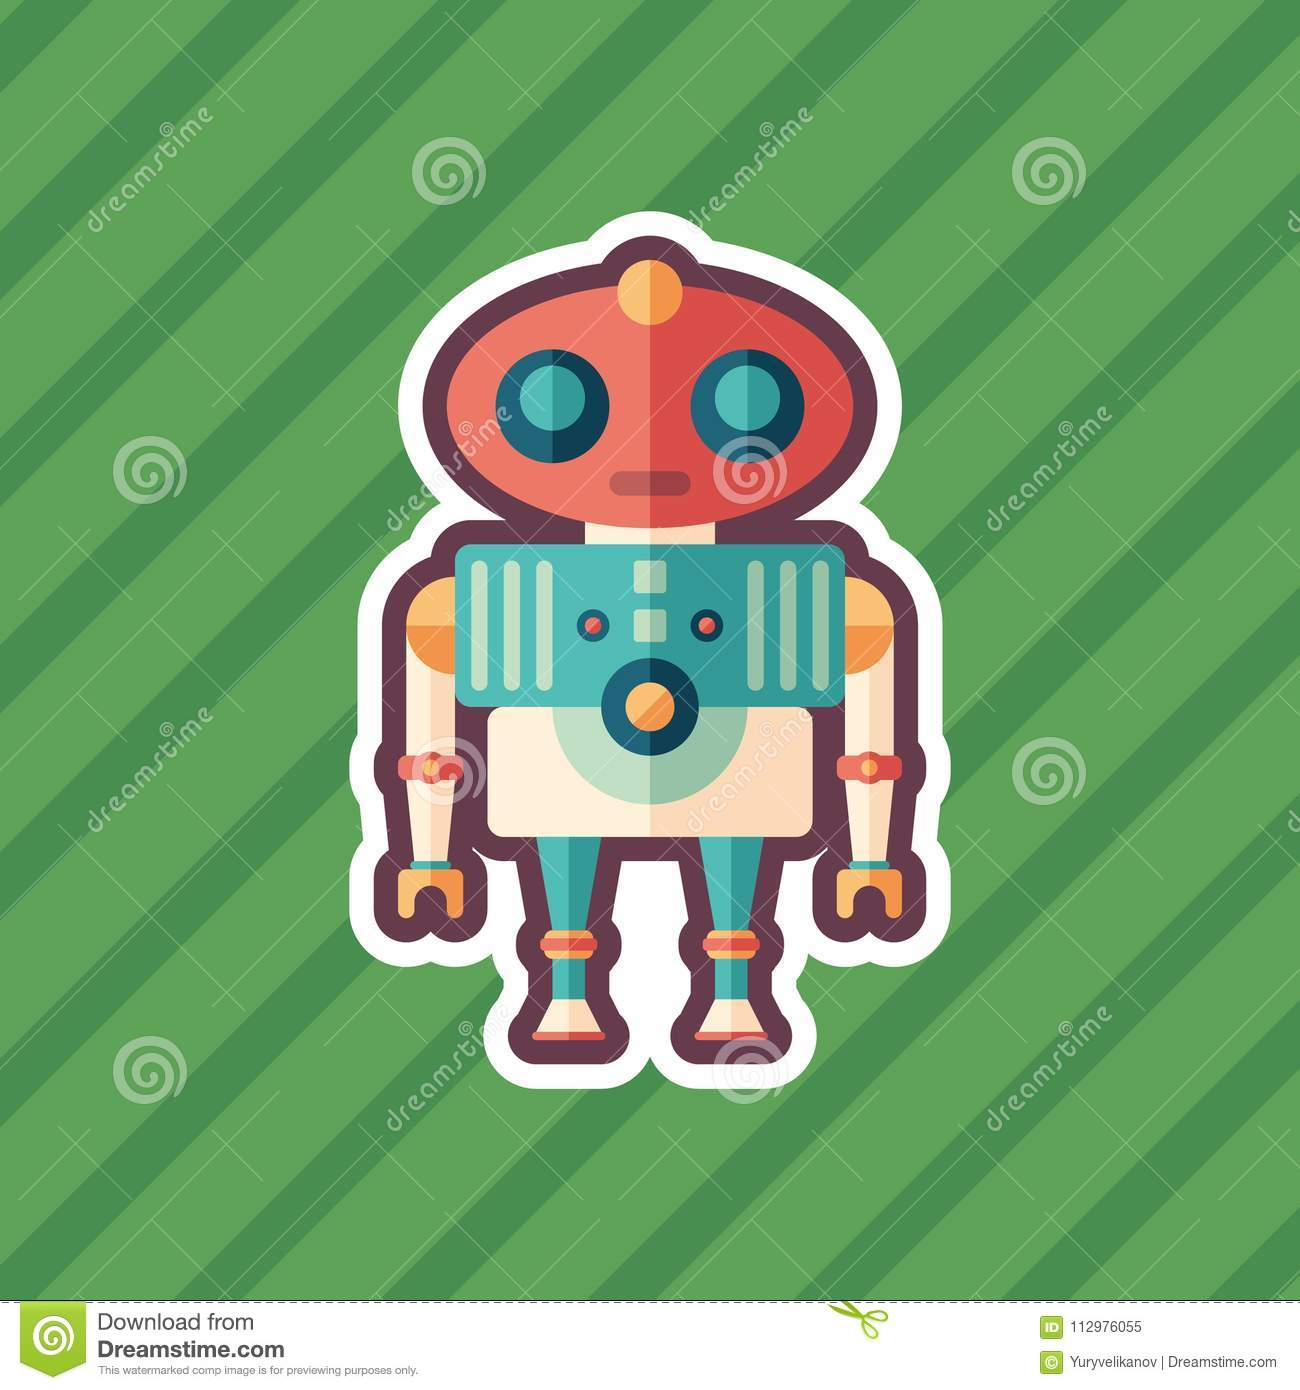 Robot alien sticker flat icon with color background.